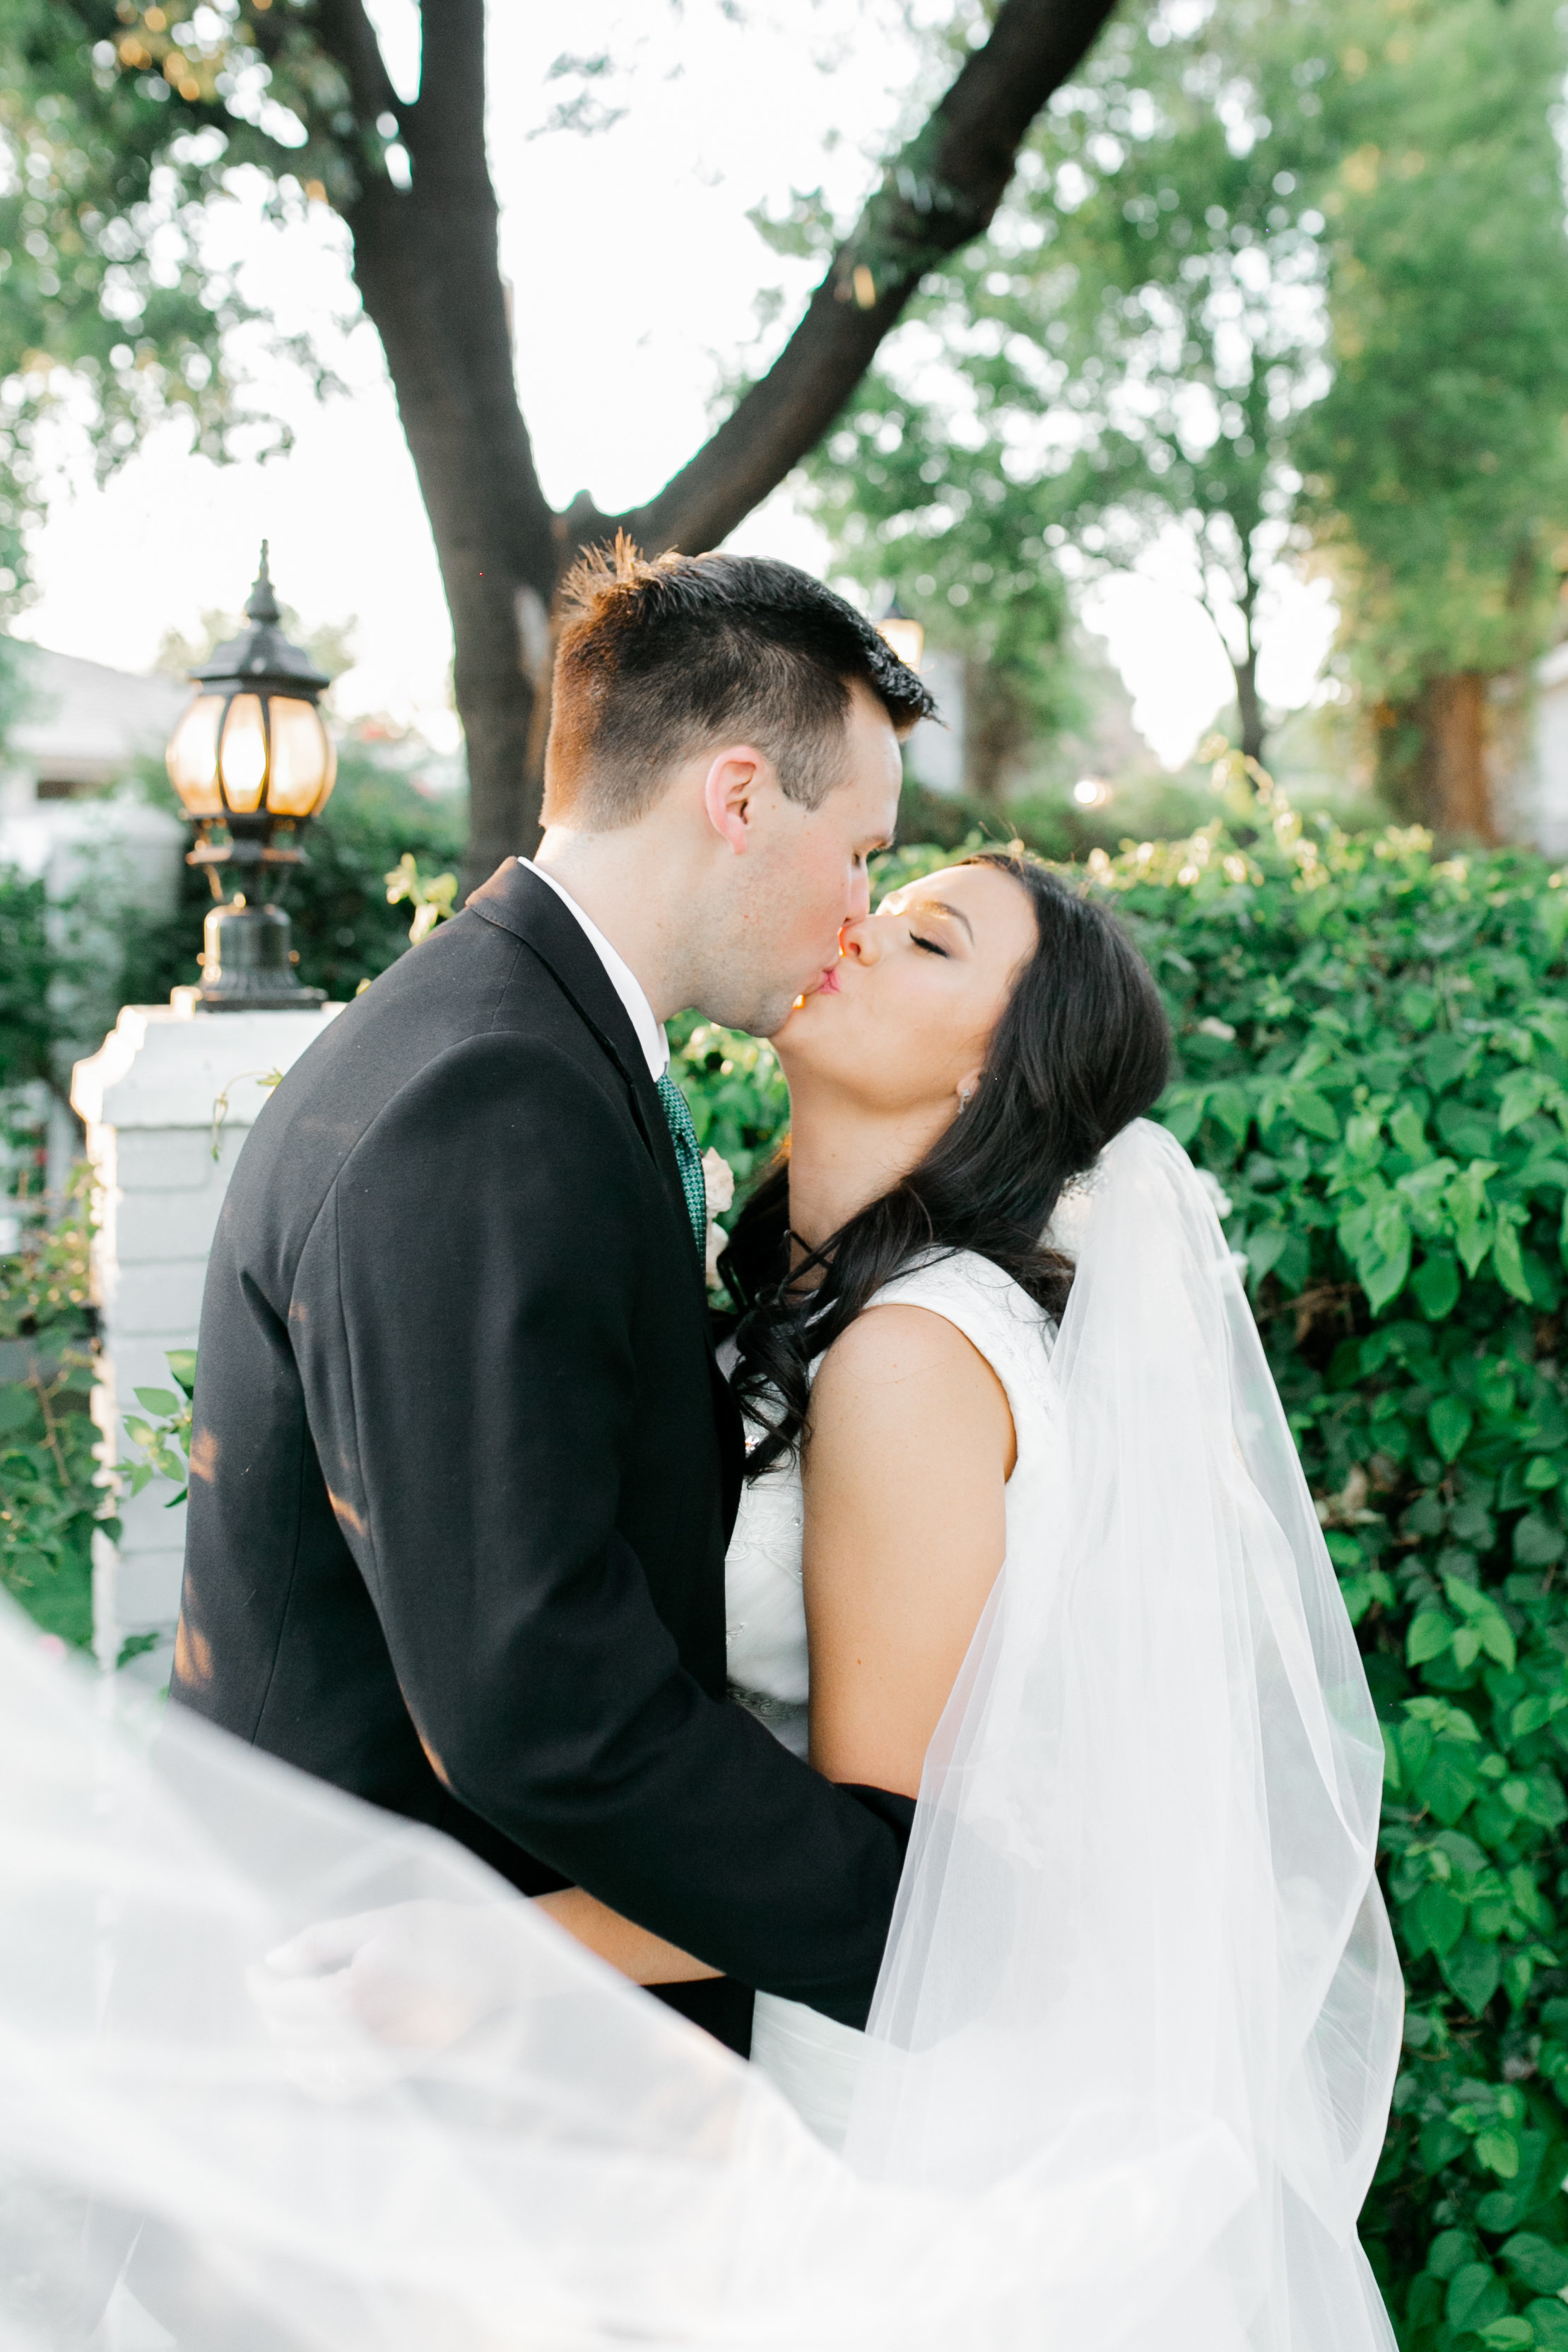 Karlie Colleen Photography - Claire & PJ Sneak Peak- The Wright House - Phoenix Arizona -146